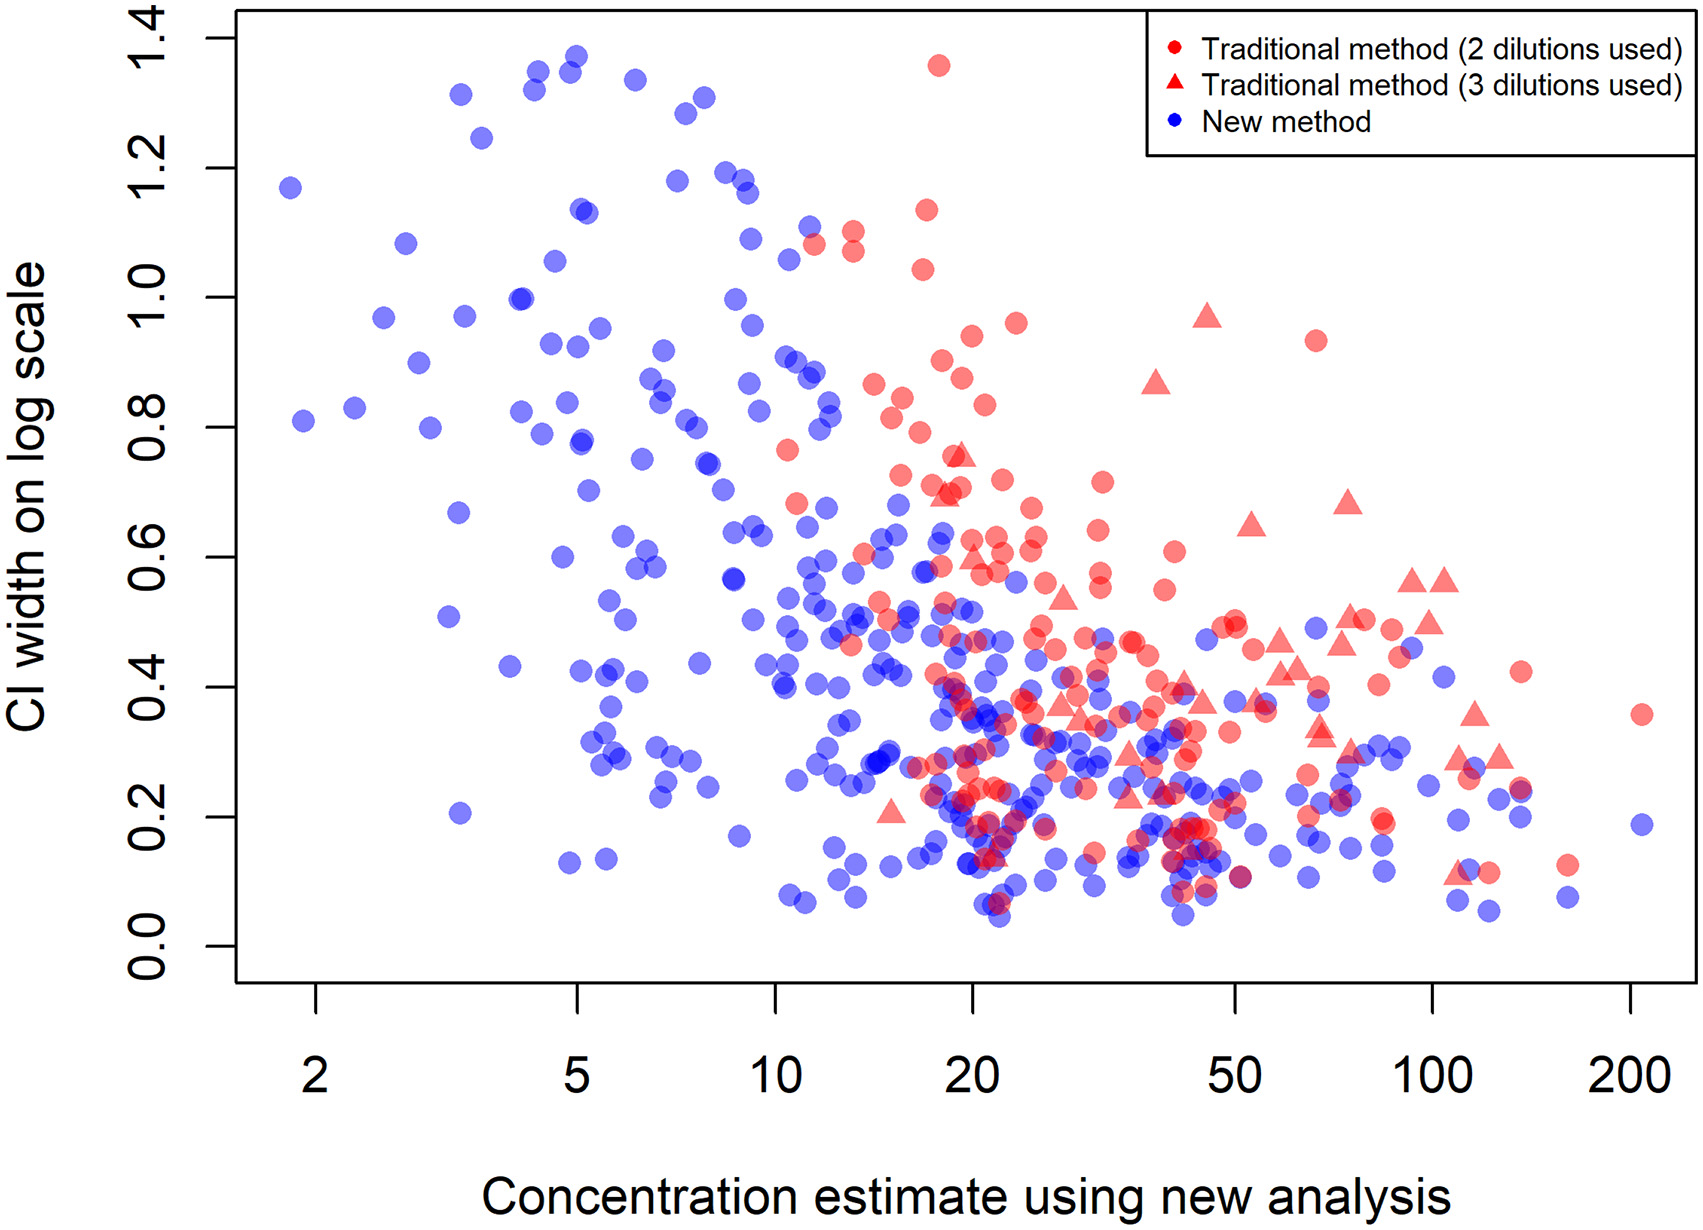 Concentration estimate using new analysis